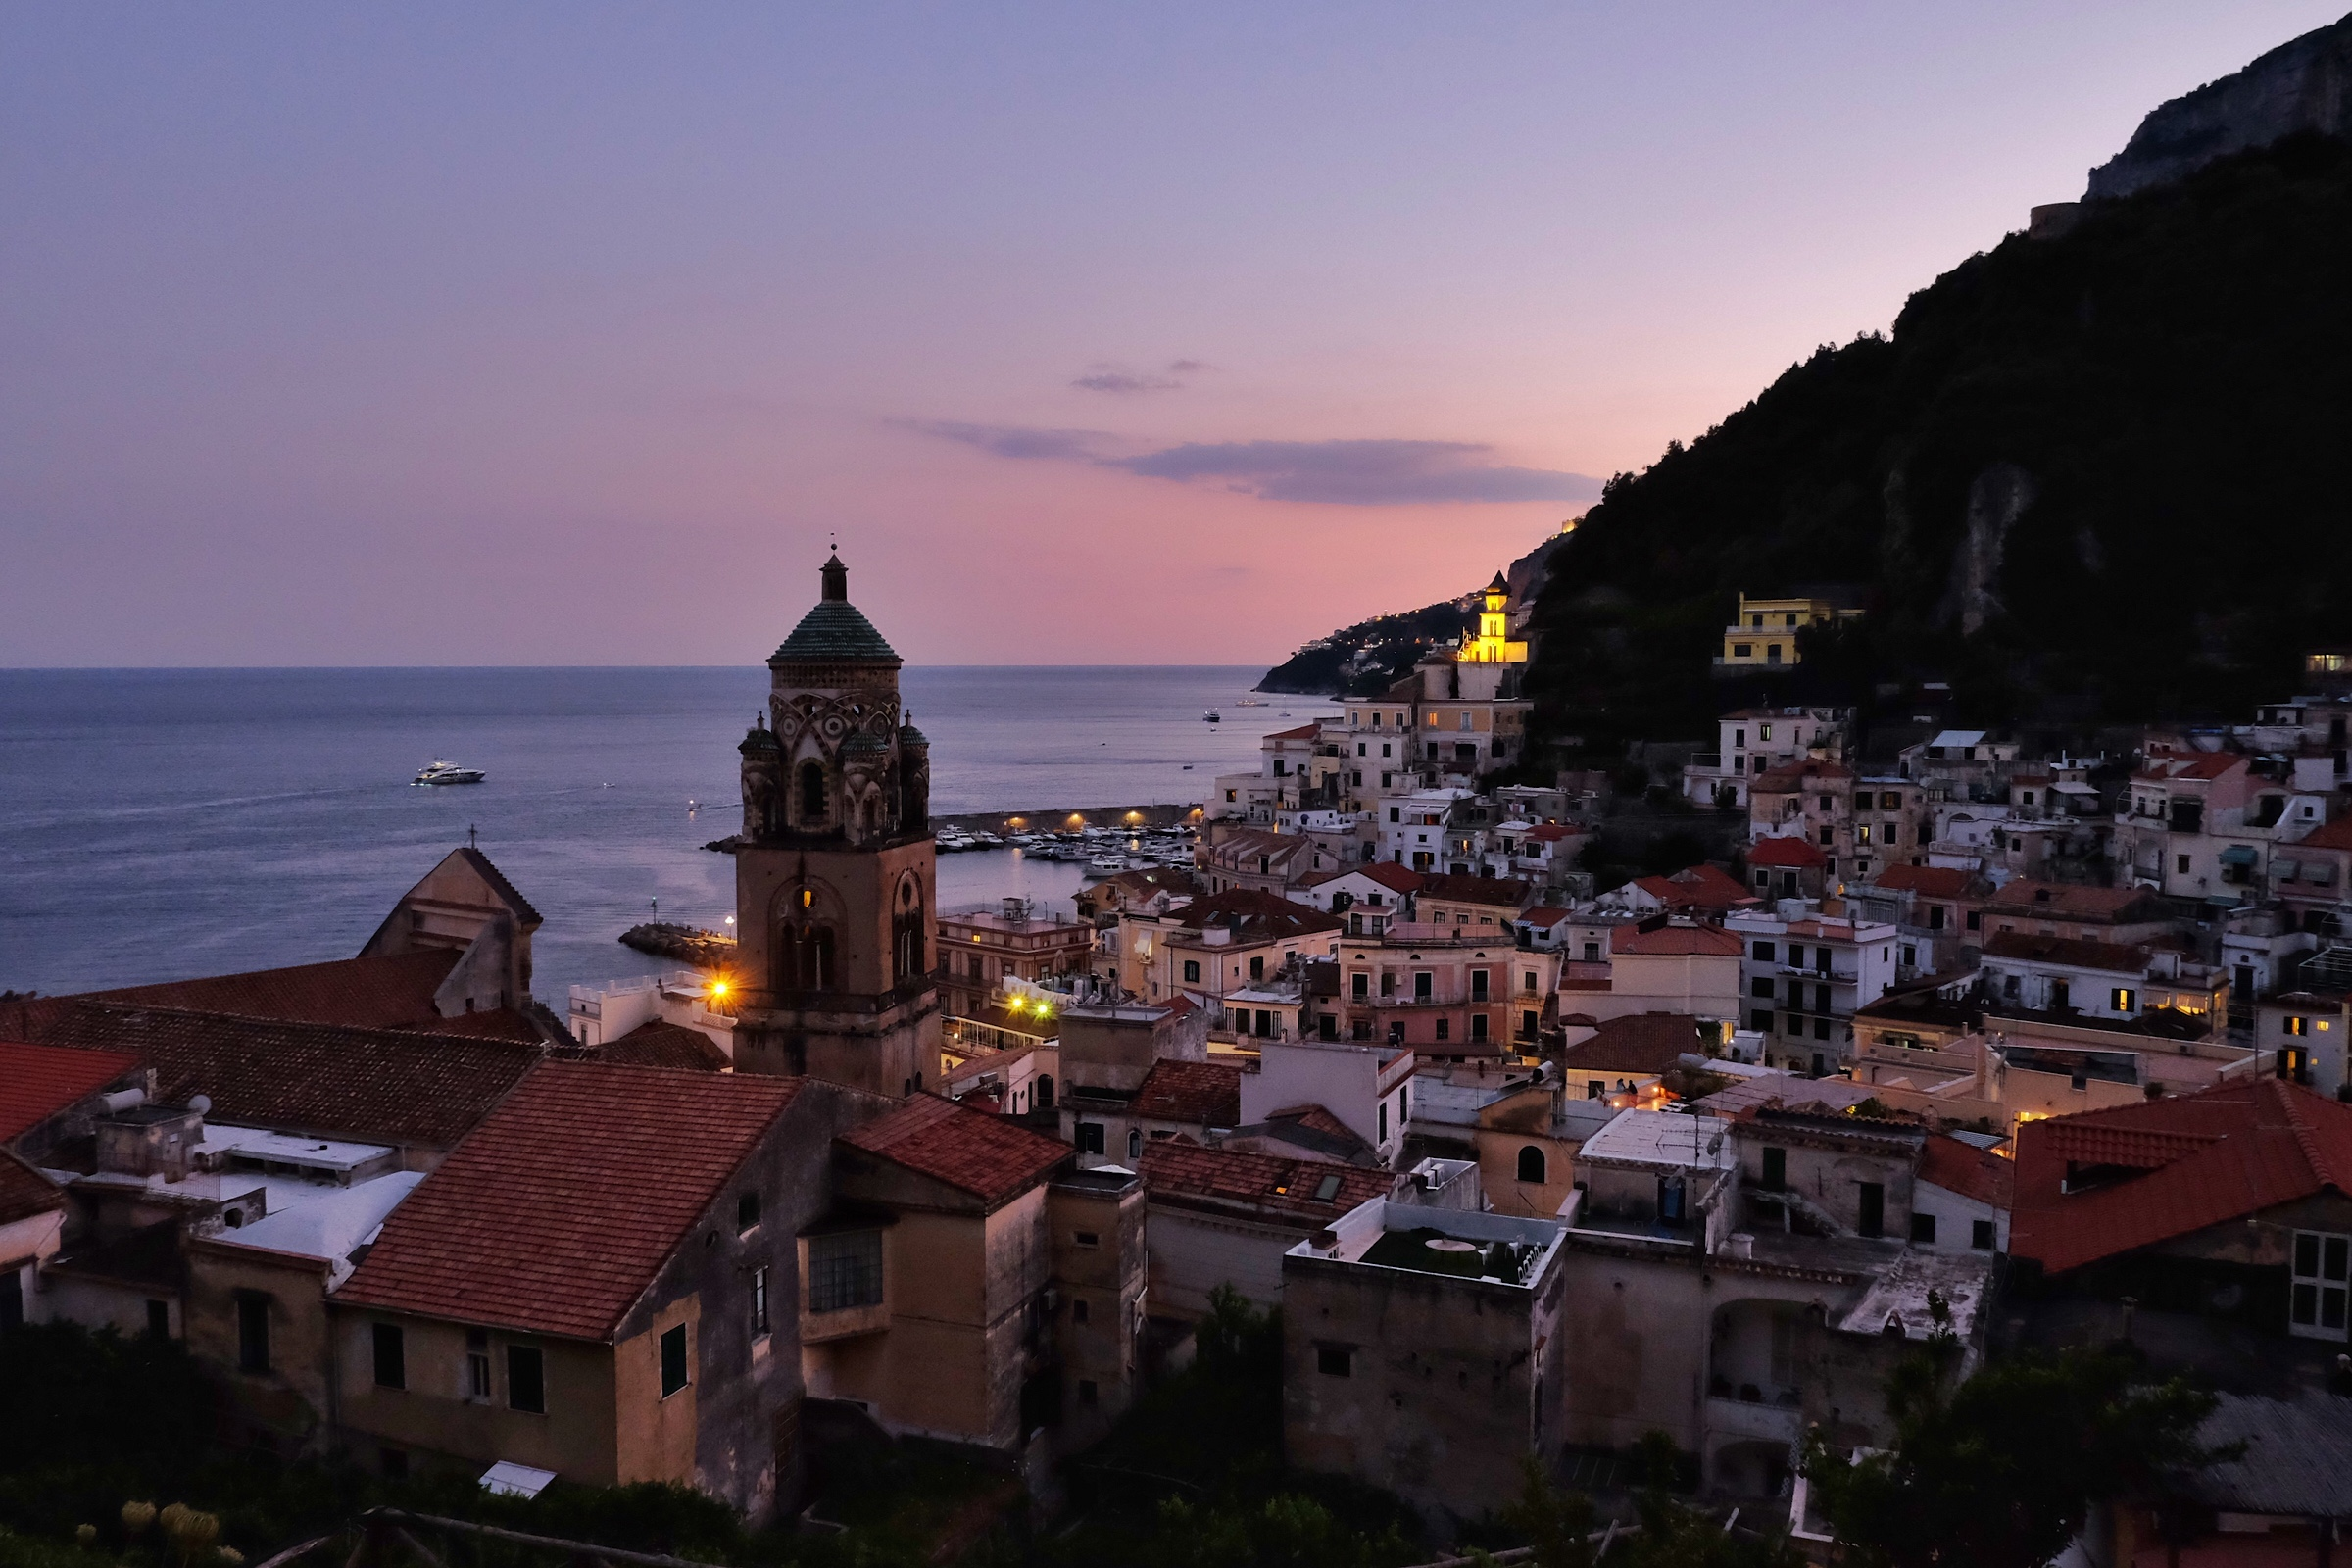 Dusk view from our apartment in Amalfi.